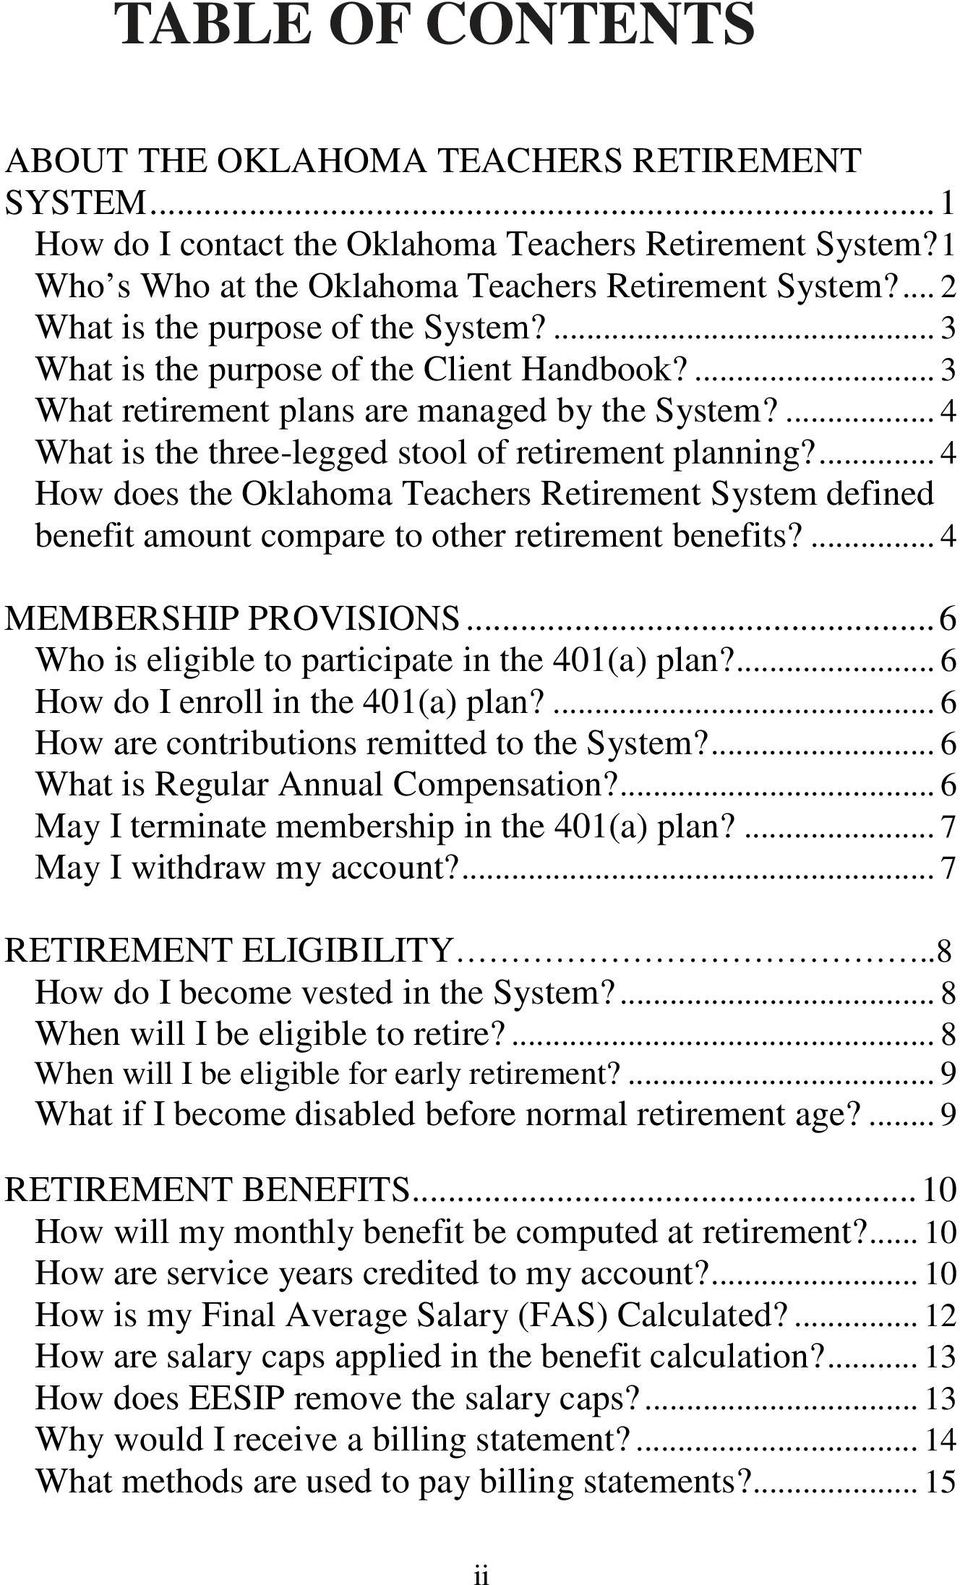 ... 4 How does the Oklahoma Teachers Retirement System defined benefit amount compare to other retirement benefits?... 4 MEMBERSHIP PROVISIONS... 6 Who is eligible to participate in the 401(a) plan?